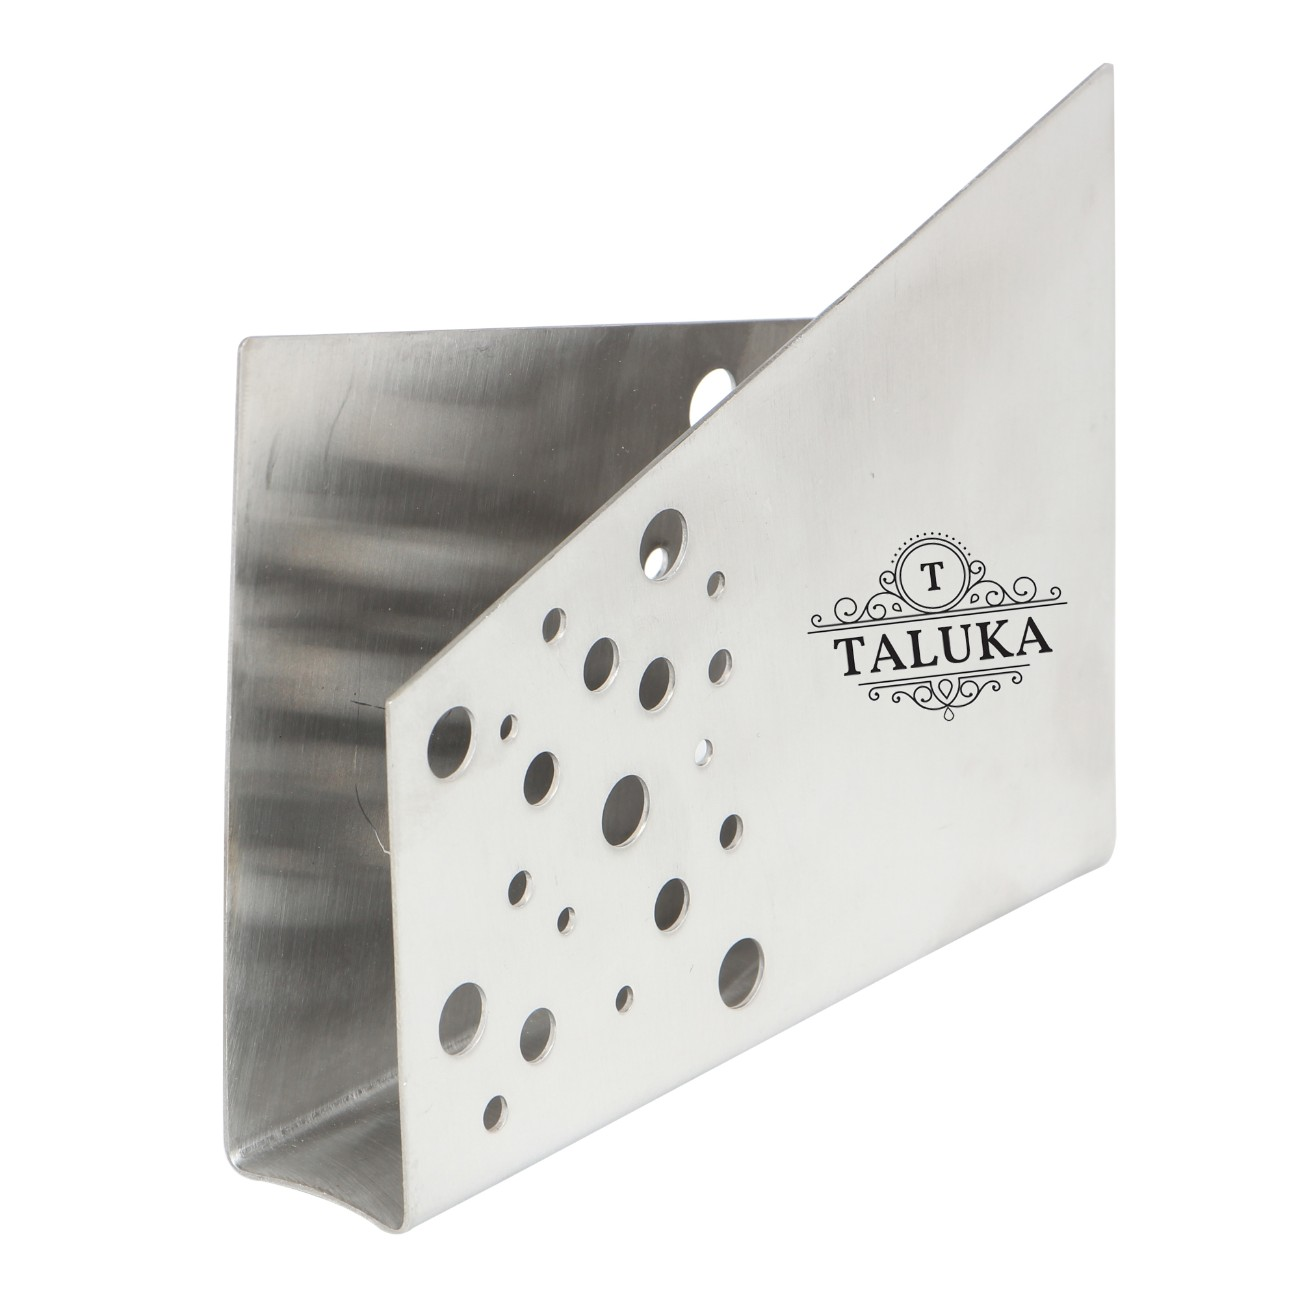 Stainless Steel napkin Holder Home Use Hotel Bar Restaurant Gifting Purposes